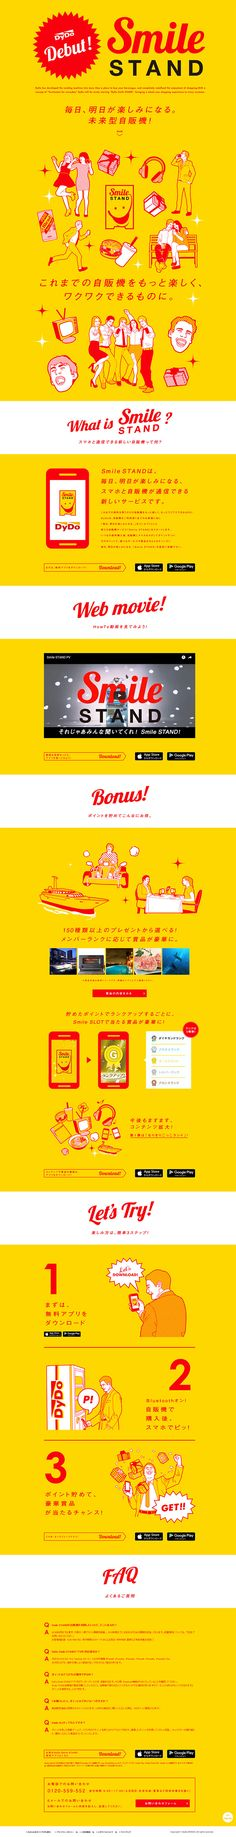 Smile STAND(スマイルスタンド)【飲料・お酒関連】のLPデザイン。WEBデザイナーさん必見!ランディングページのデザイン参考に(シンプル系) Webpage Layout, Web Layout, Layout Design, What Is Smile, Character Web, Mobile Web Design, Book Posters, Web Inspiration, Graphic Design Posters